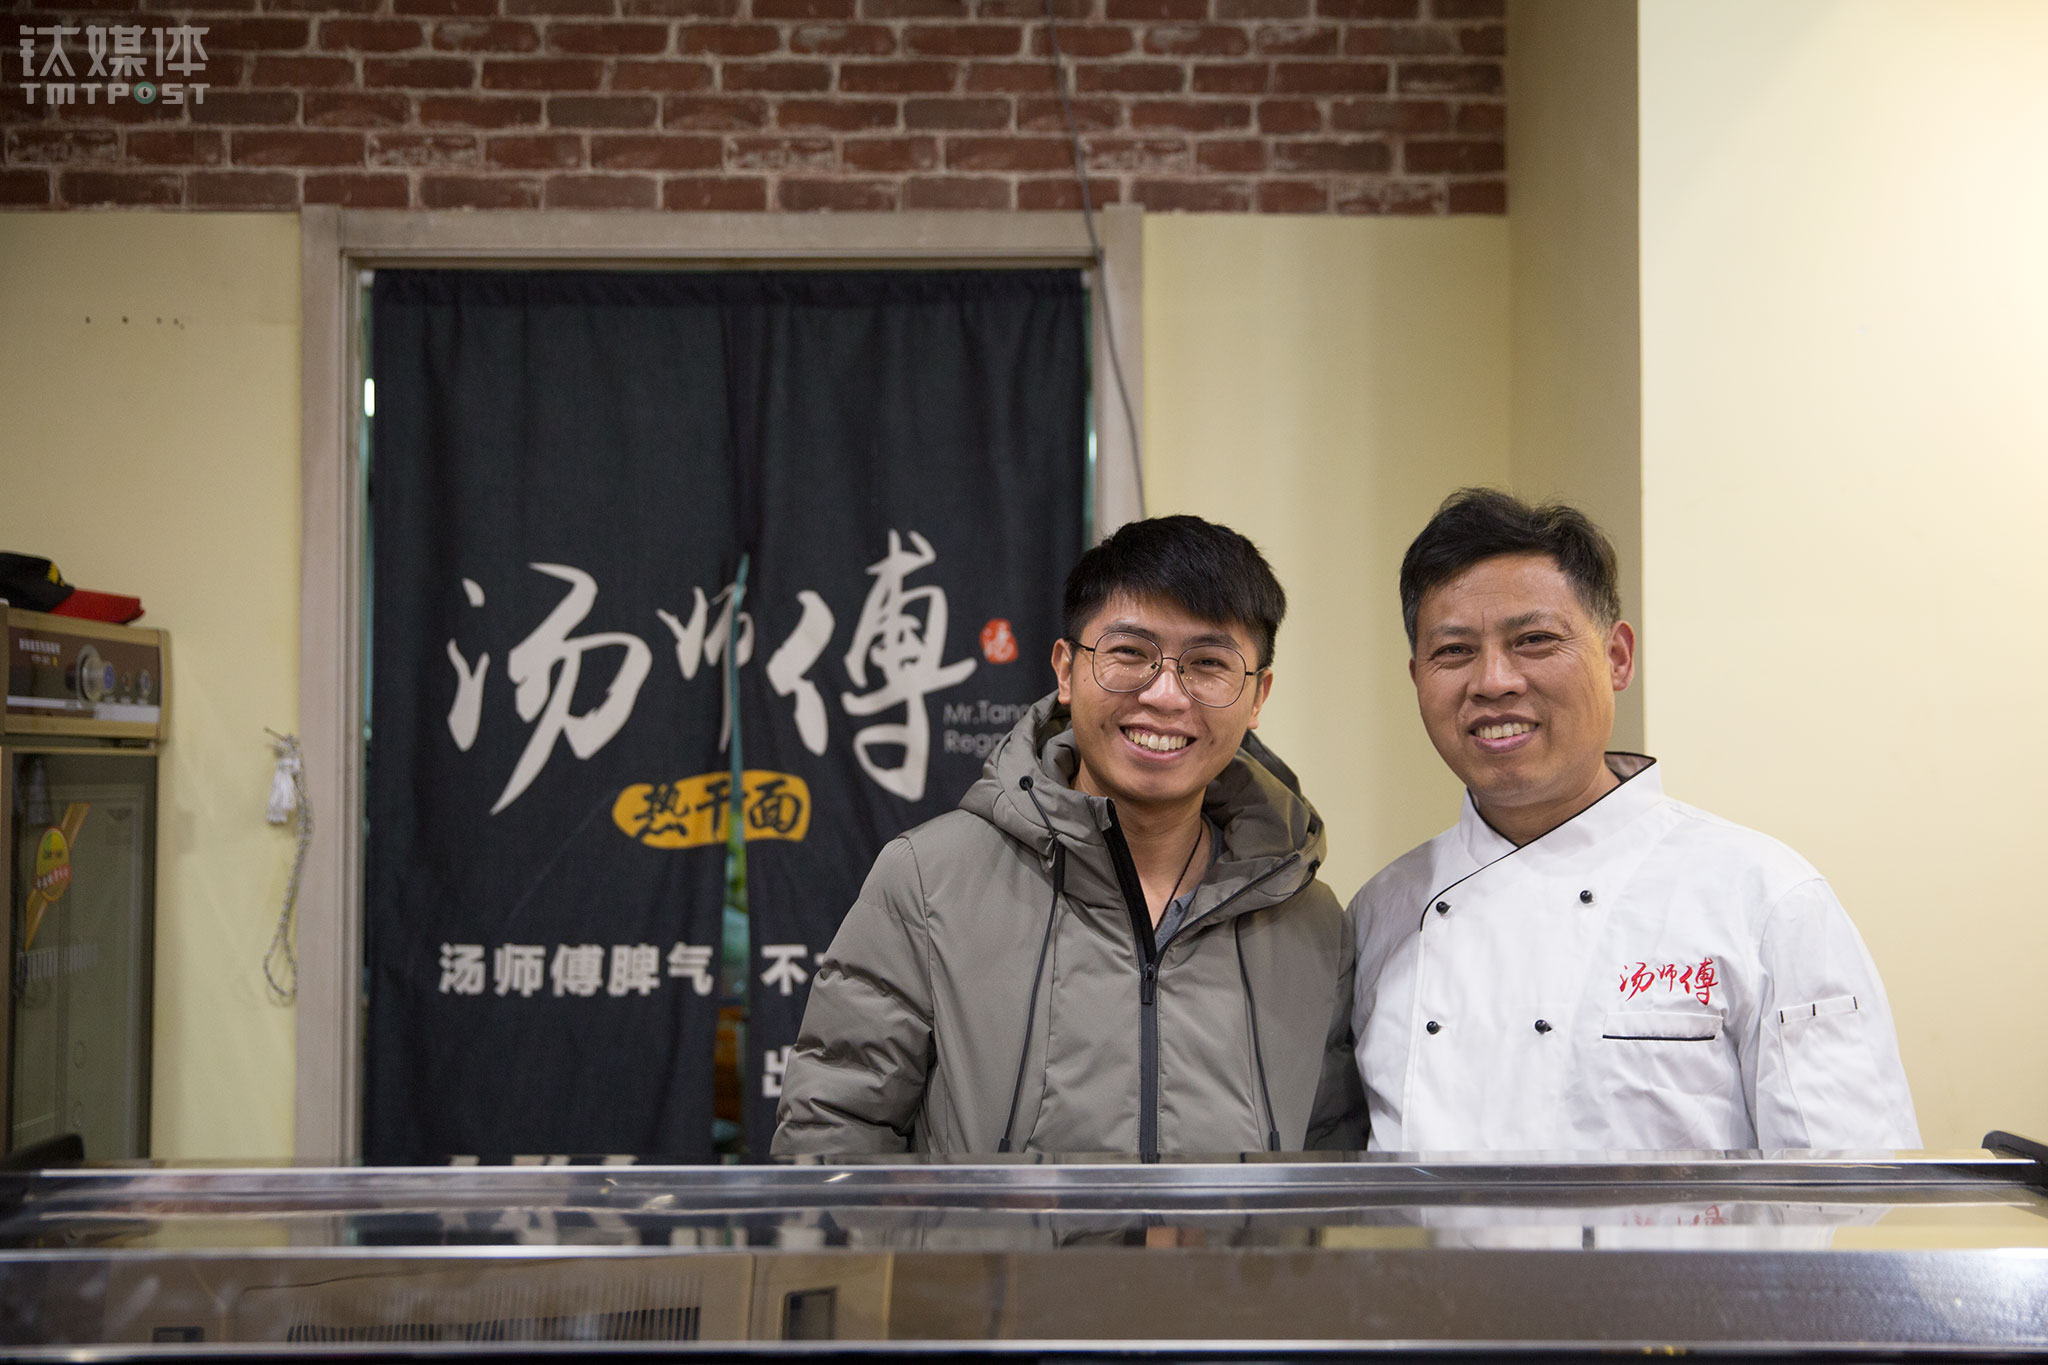 Changyingtianjie Business Street, Beijing, December 27th, 2017. Tang Huai and his father were busy at their restaurant Master Tang's Hot Dry Noodles. This is the fourth branch of Master Tang's. Tang Huai was a former programmer at an Internet company while Tang is a life-long noodle maker. Prior to coming to Beijing, Tang's father had been selling noodles in Wuhan for years.